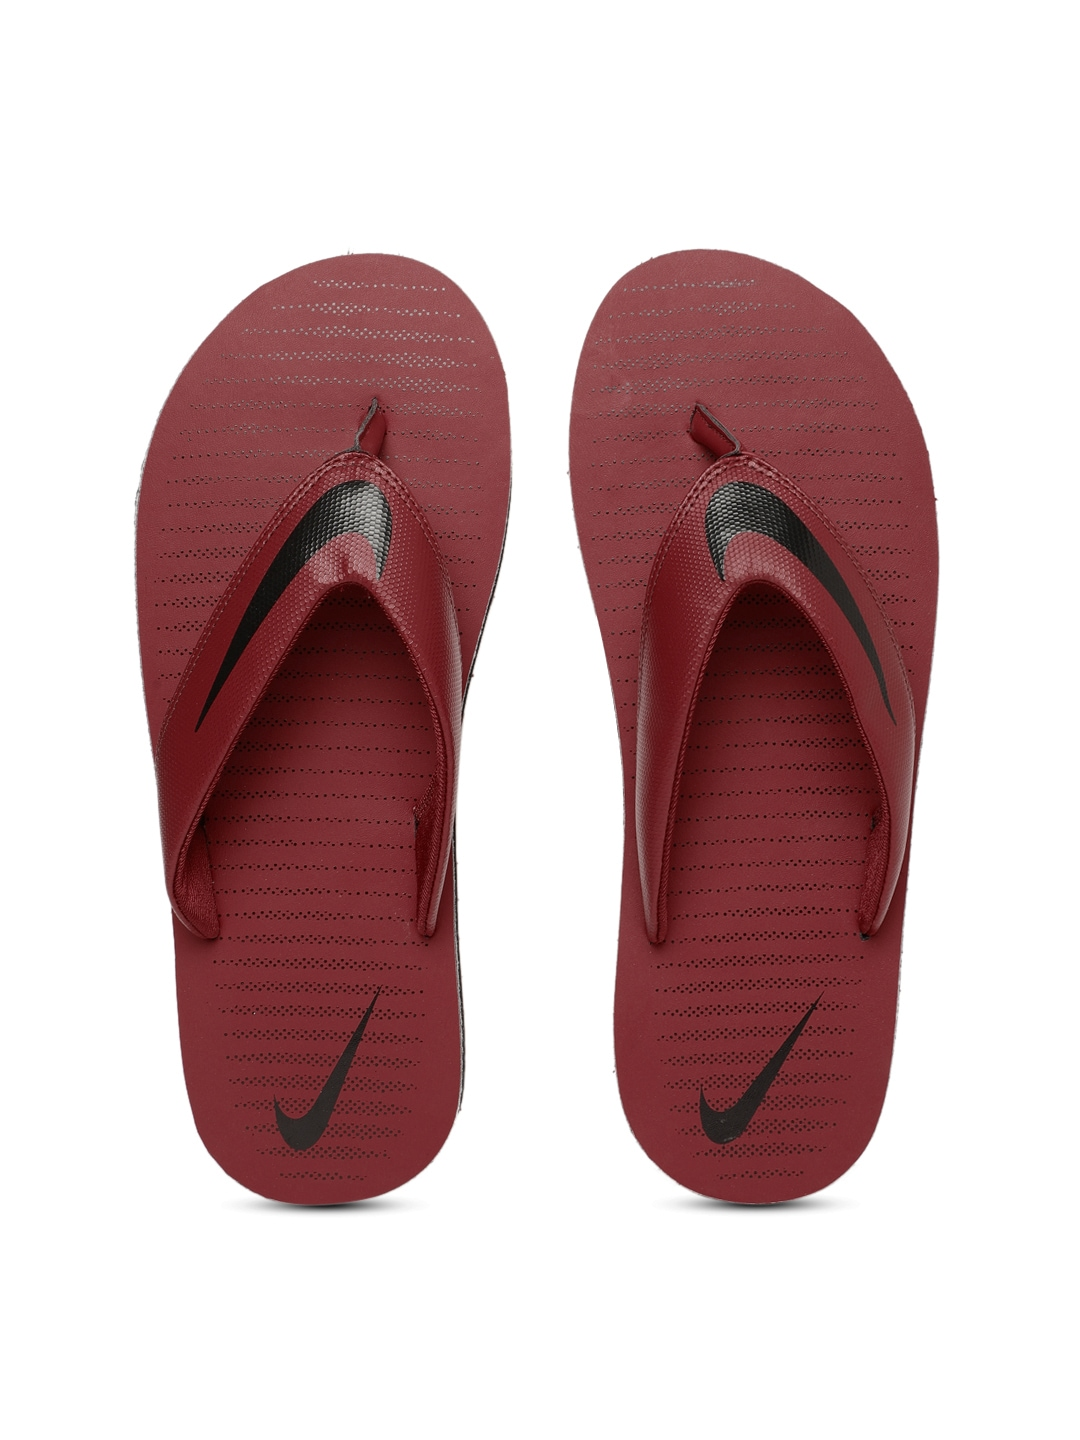 ad7aab8b6 Nike Flip-Flops - Buy Nike Flip-Flops for Men Women Online